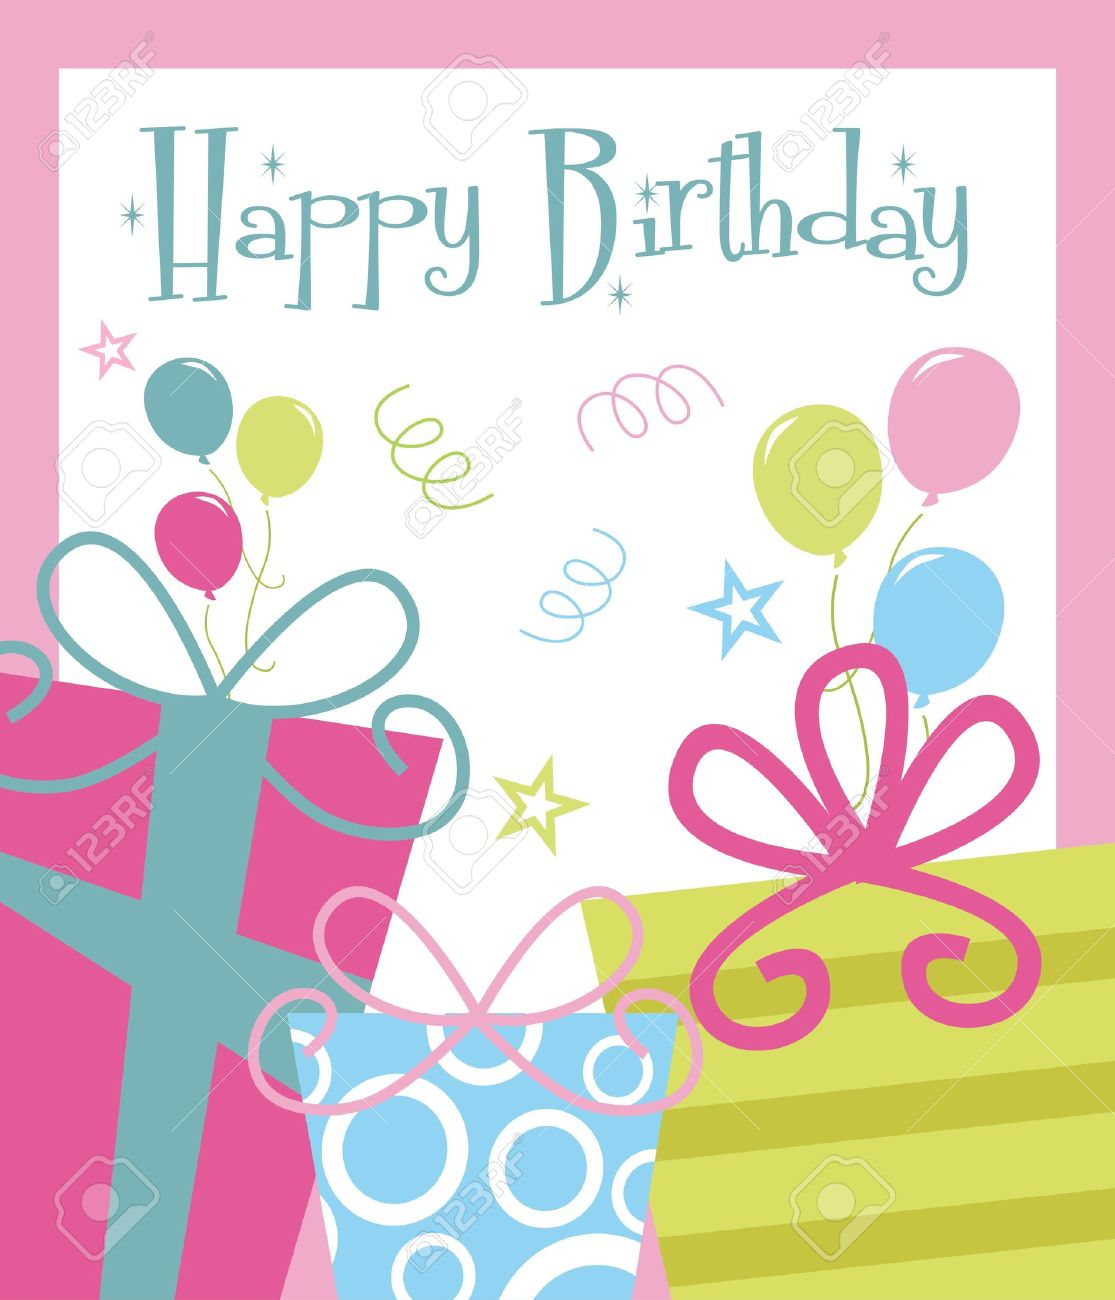 happy birthday word clipart ; 20855088-happy-birthday-greeting-card-illustration